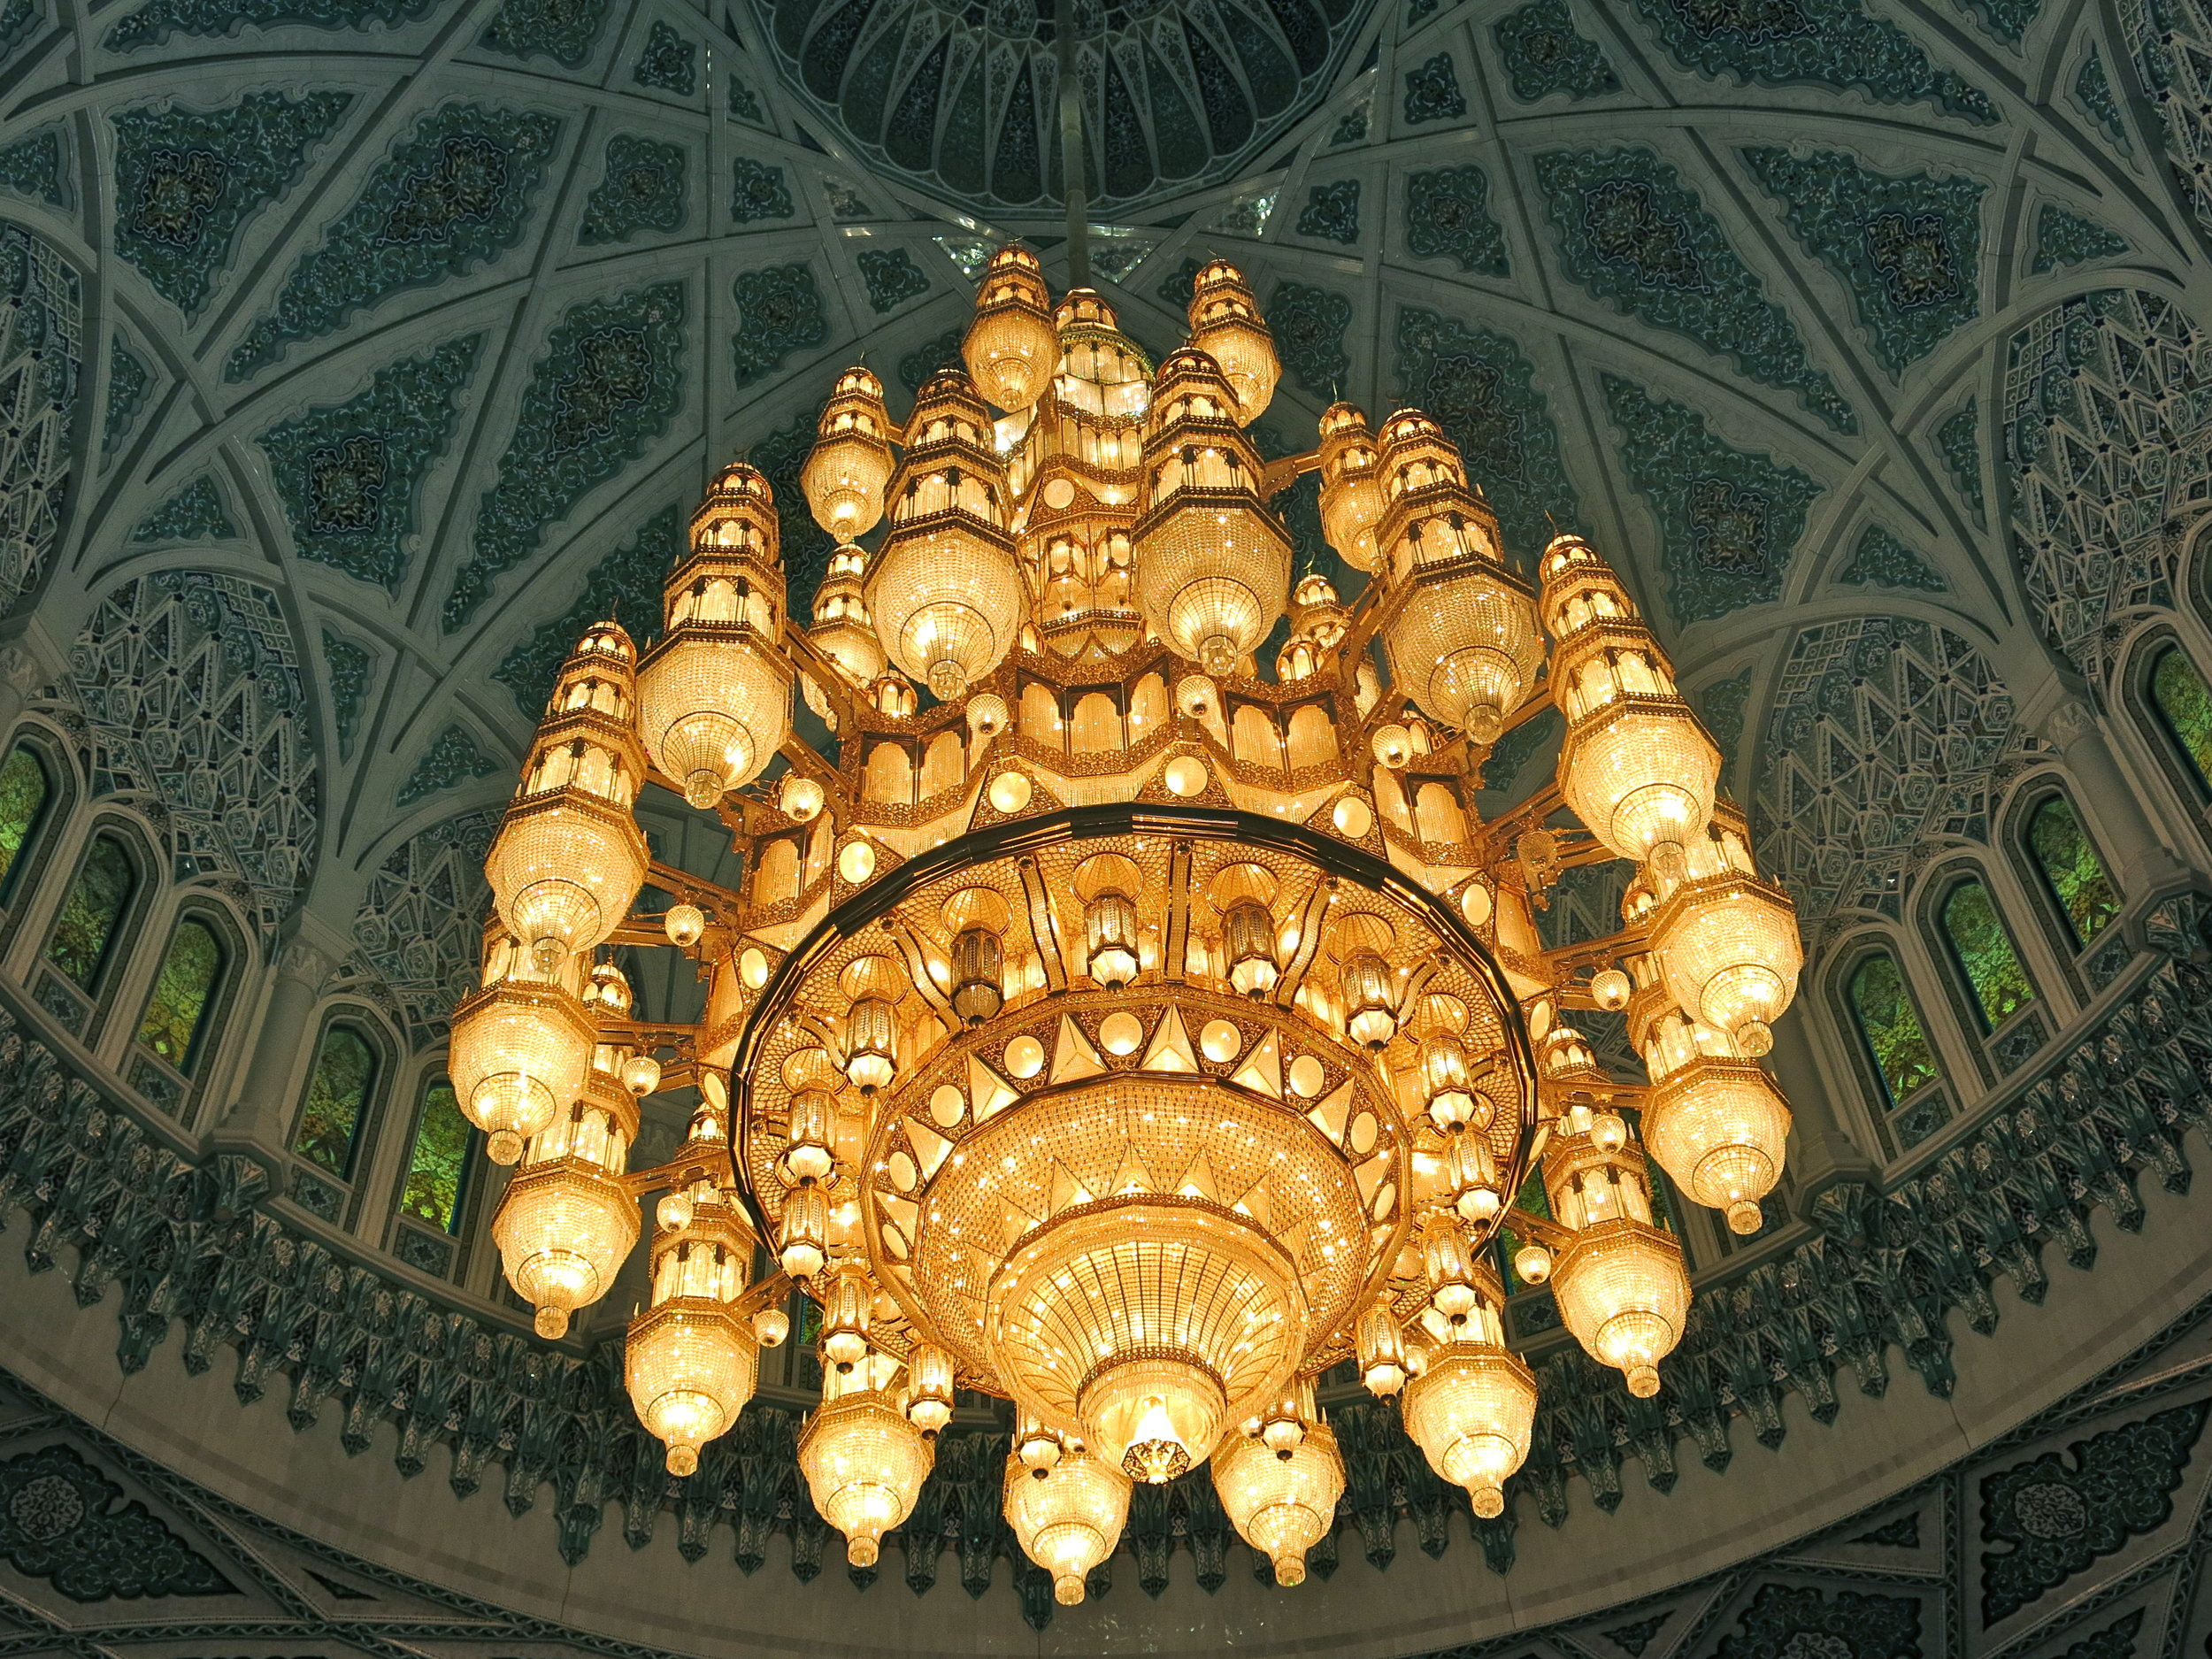 The crystal Swarovski chandelier is one of the largest in the world